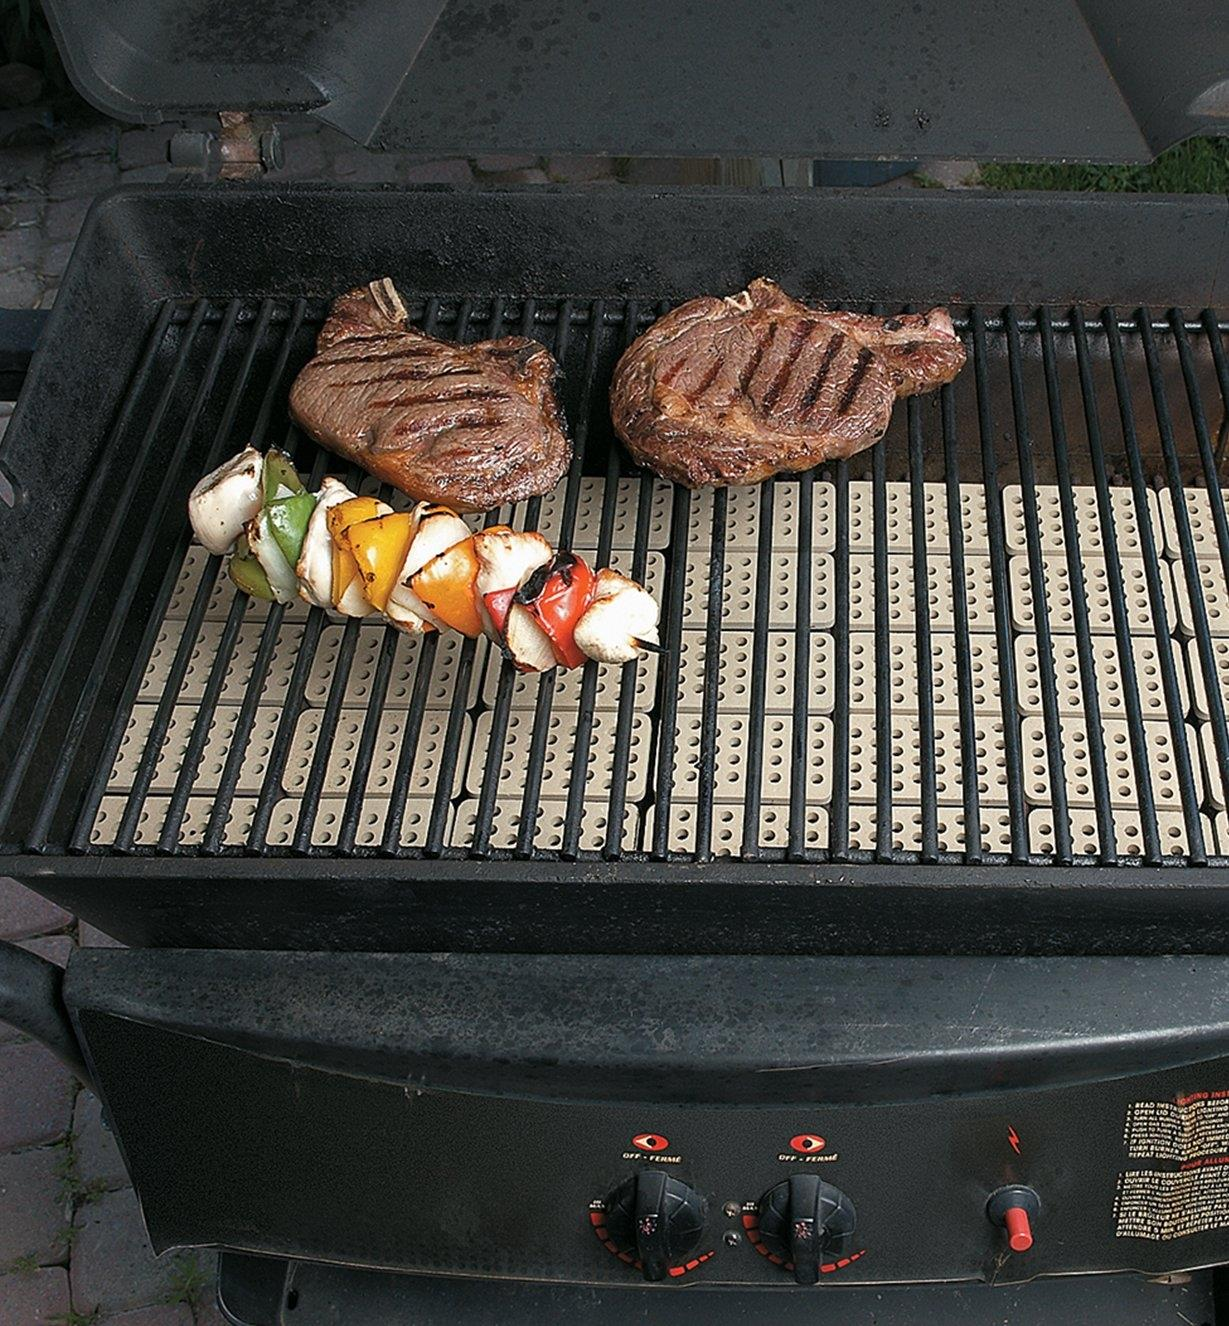 Grill Tiles in place on a barbecue where food is cooking